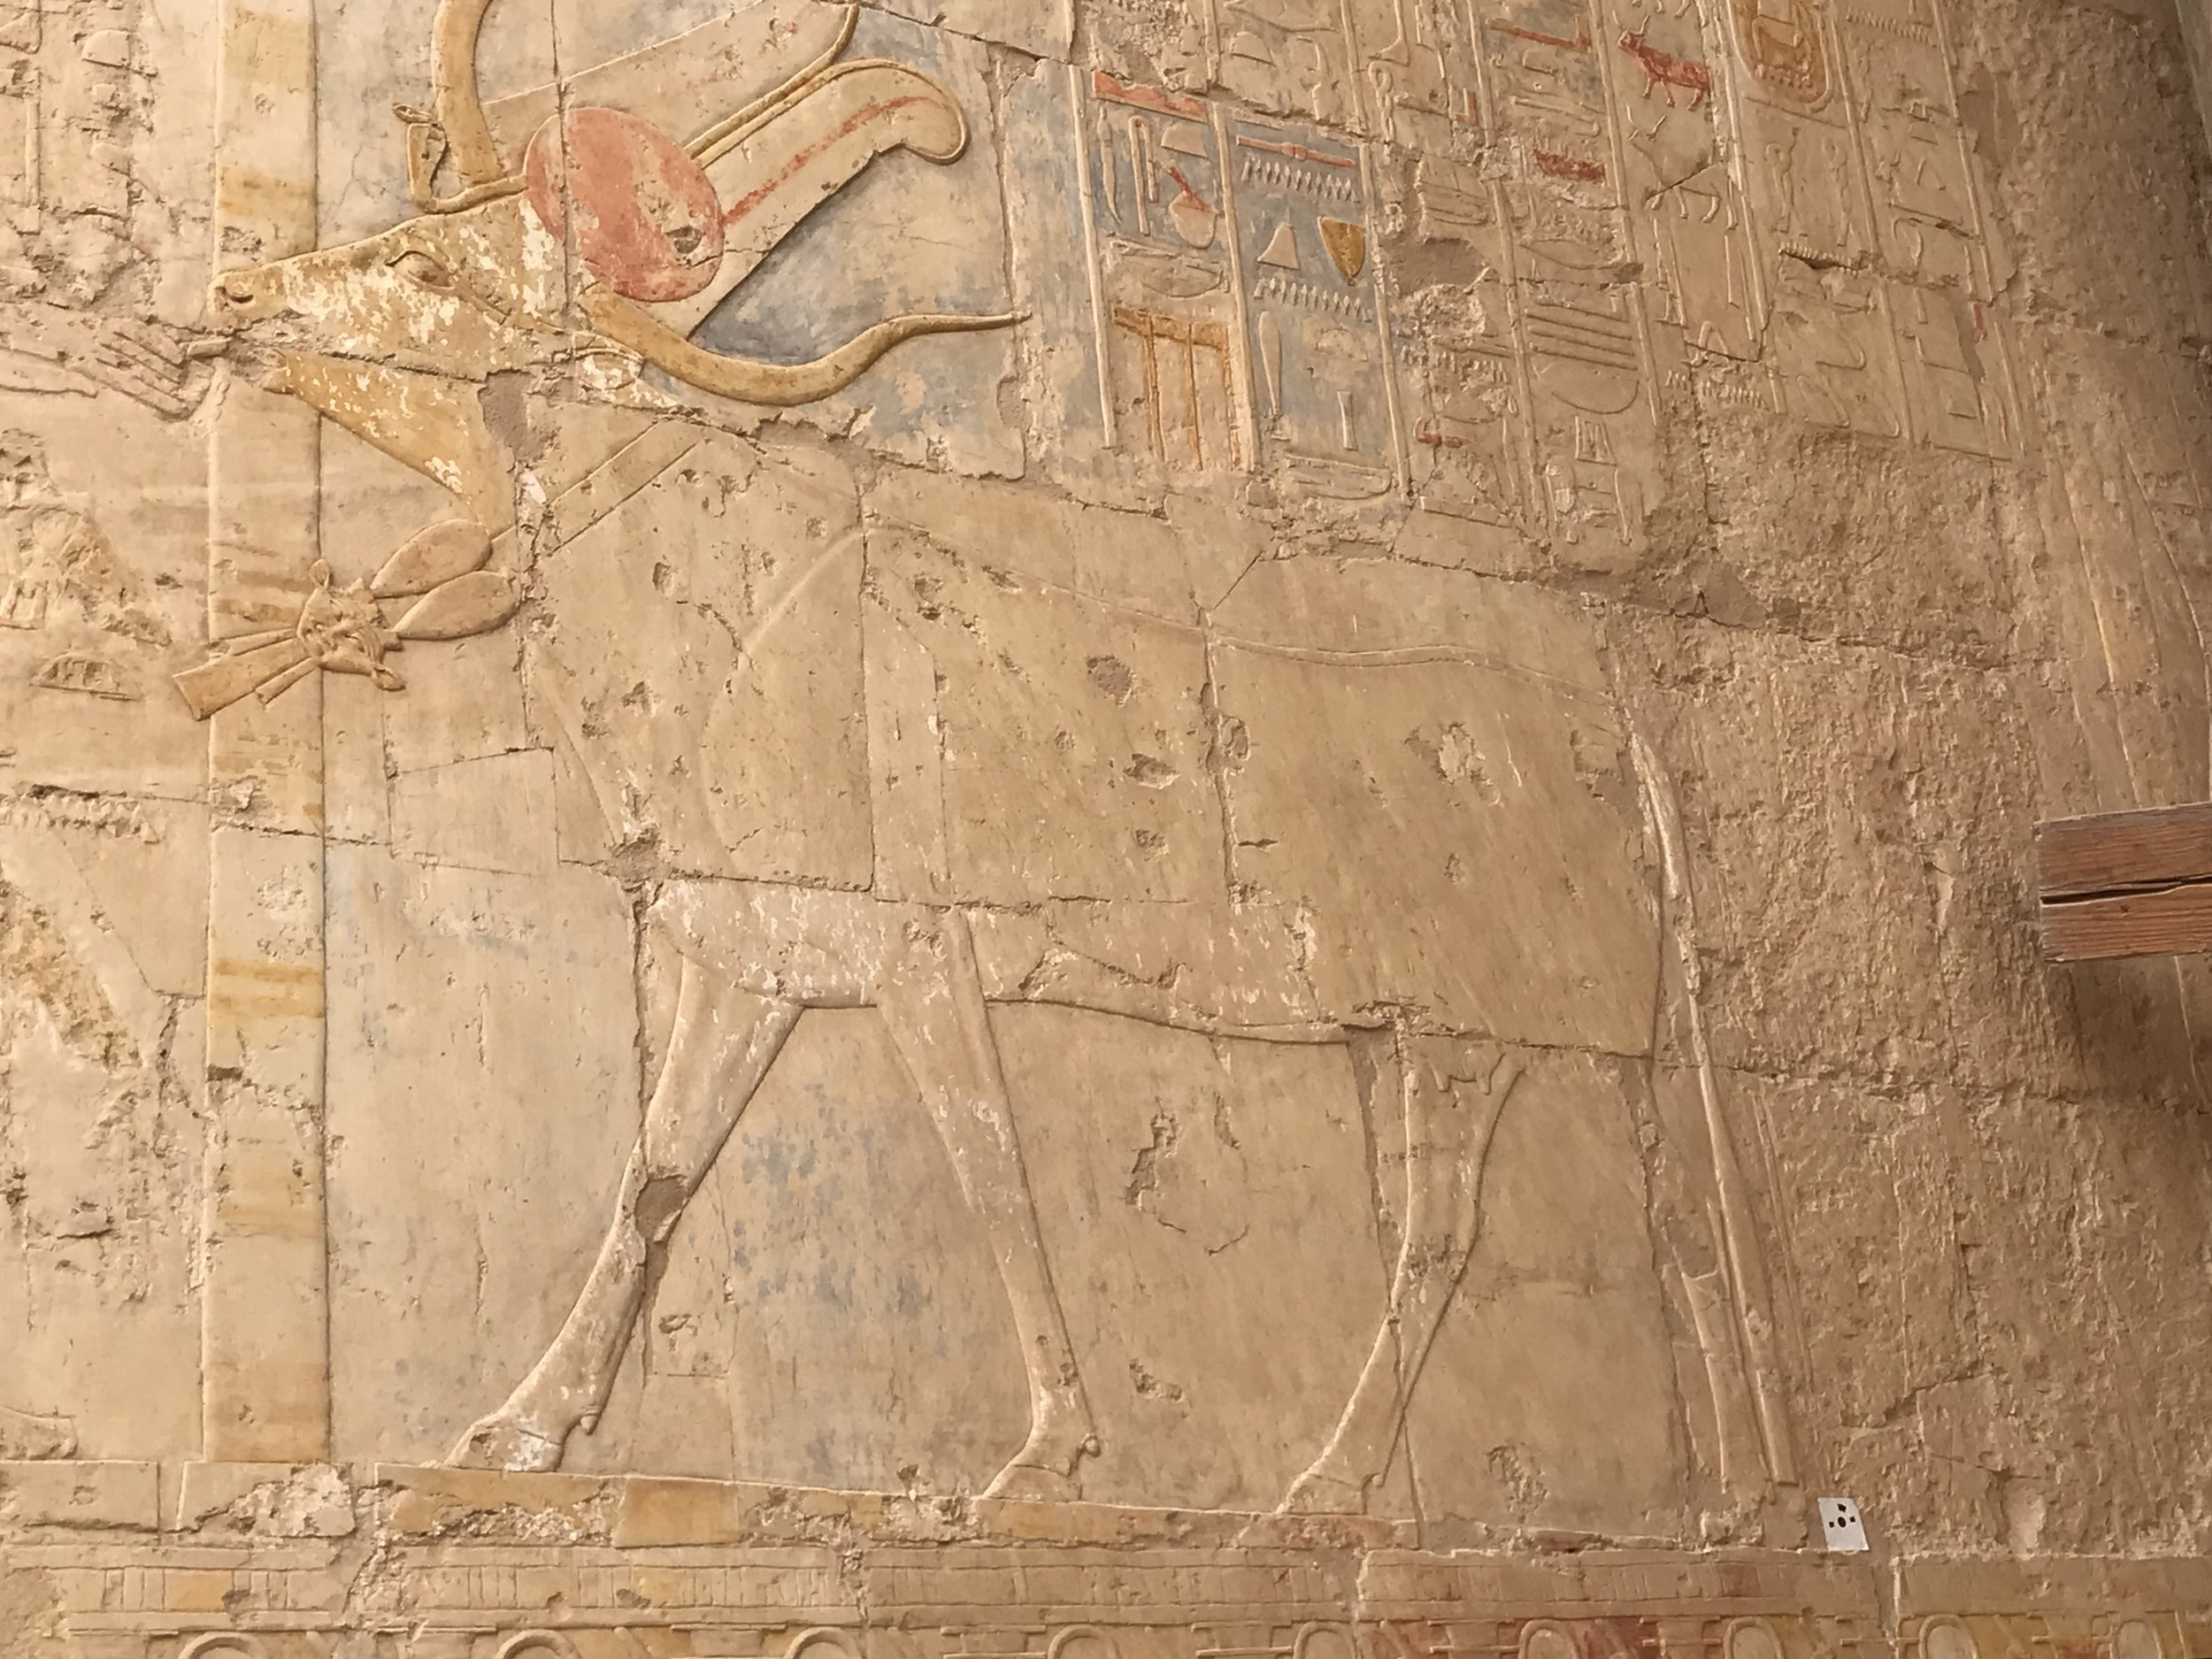 Goddess Hathor in her cow expression